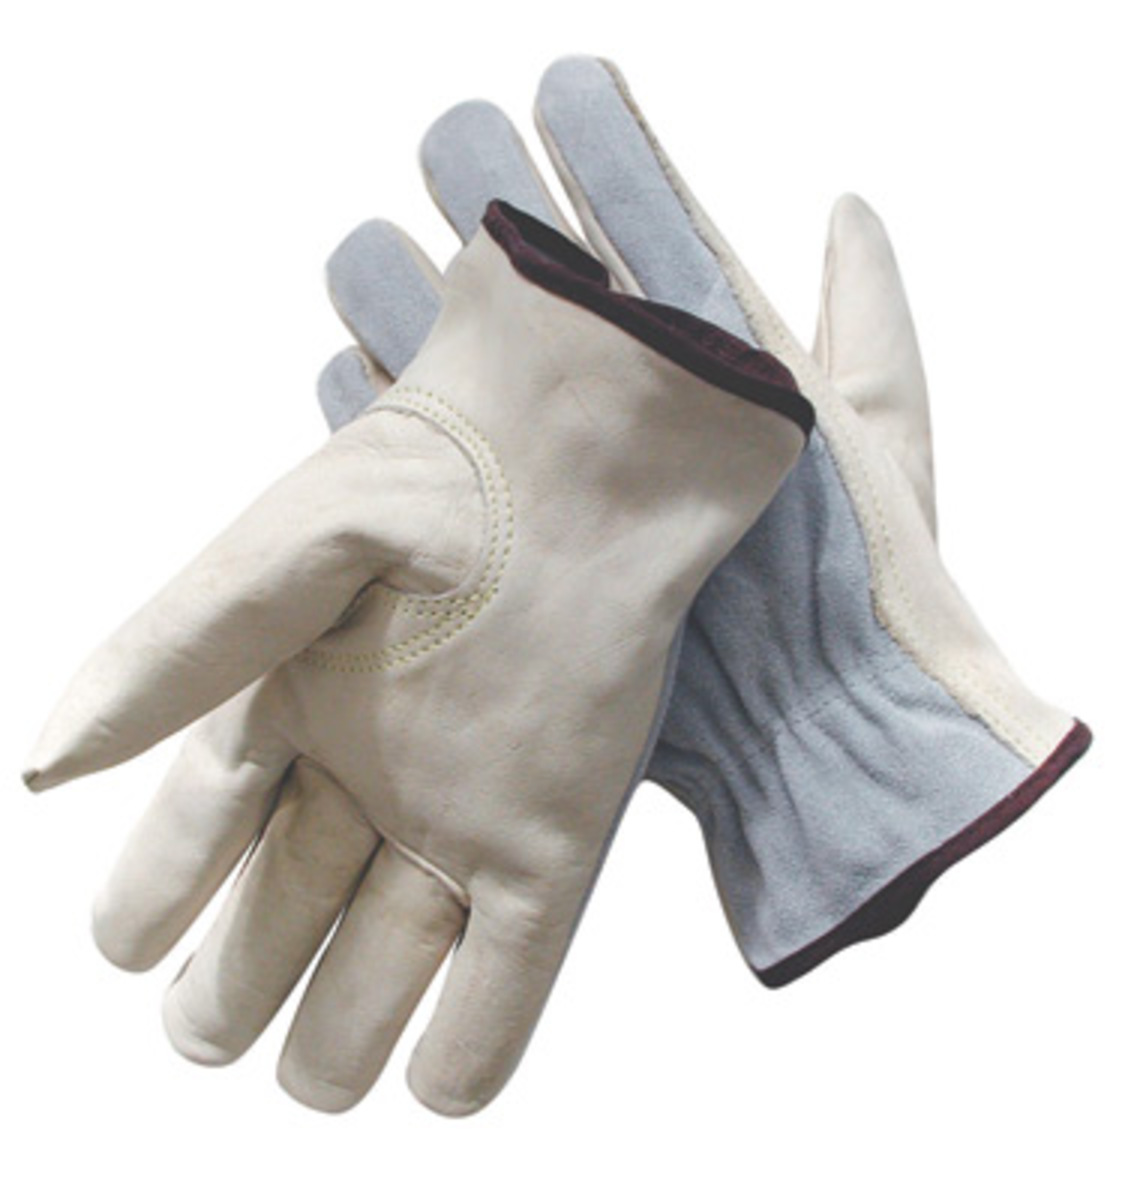 Driving gloves unlined - Radnor Large Grain Palm Split Cowhide Back Leather Unlined Drivers Gloves With Keystone Thumb